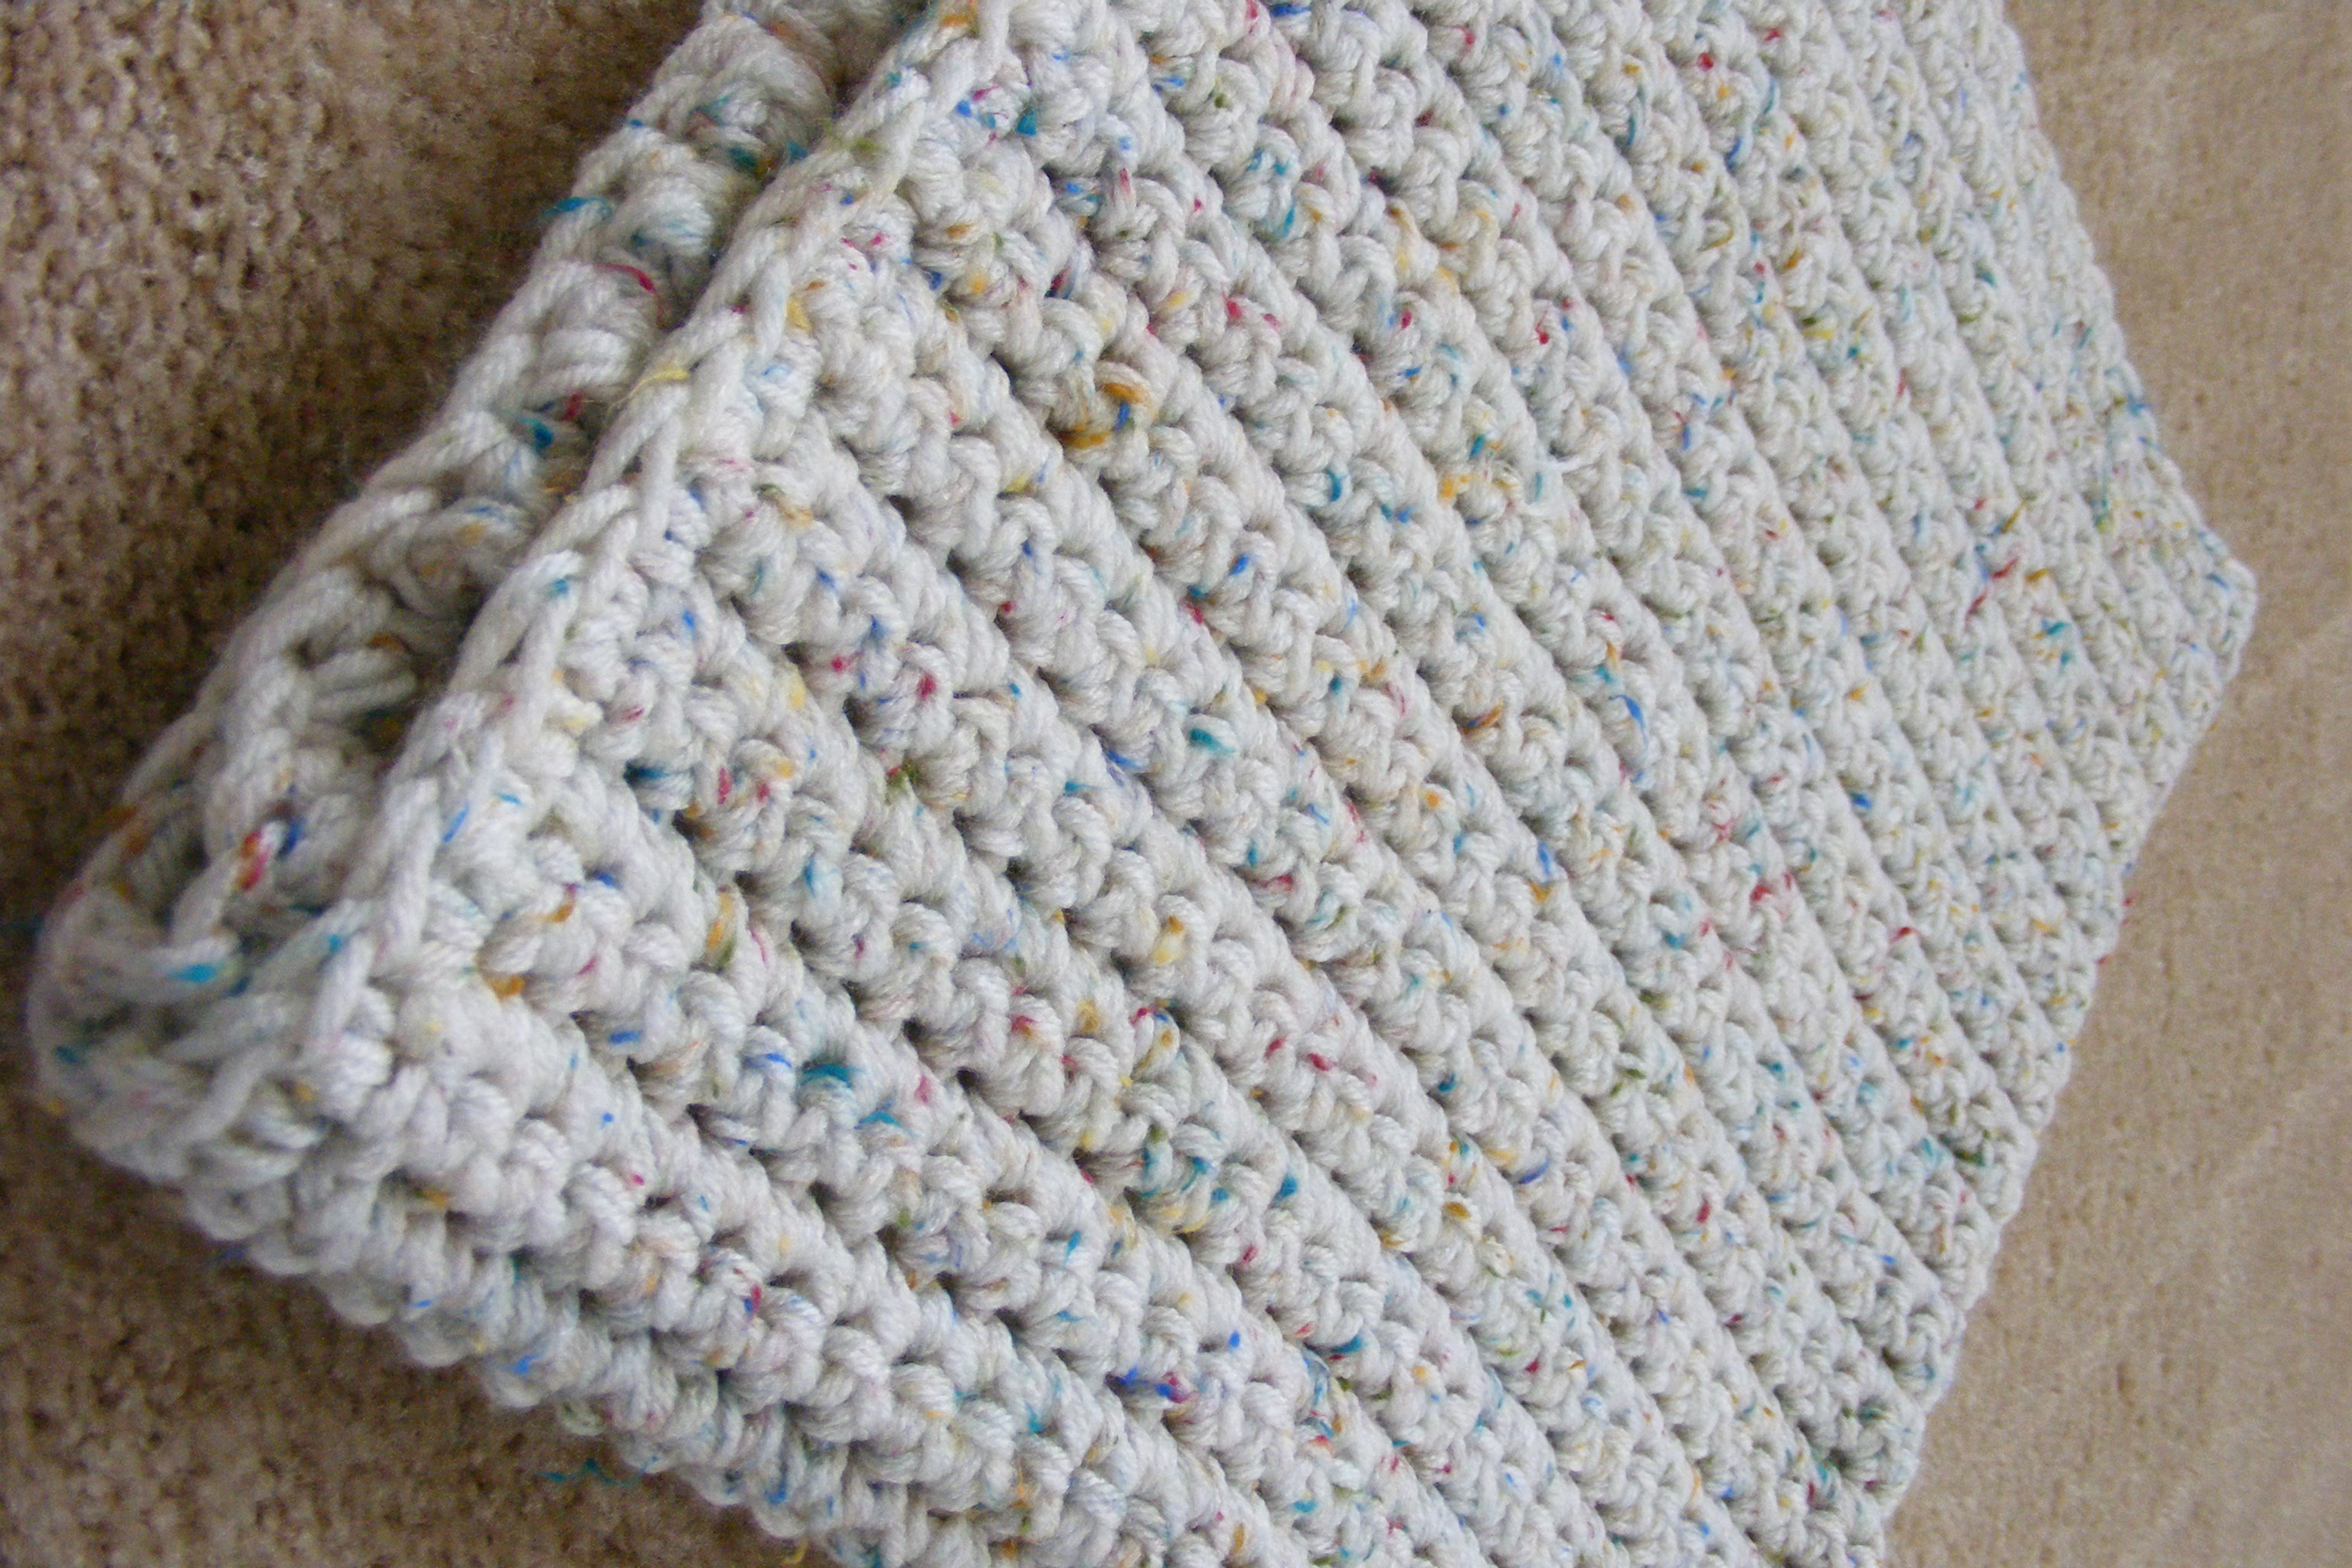 Easy Baby Blanket Knitting Pattern Elegant Free Easy Crochet Baby Blanket Patterns for Beginners Of Amazing 43 Images Easy Baby Blanket Knitting Pattern